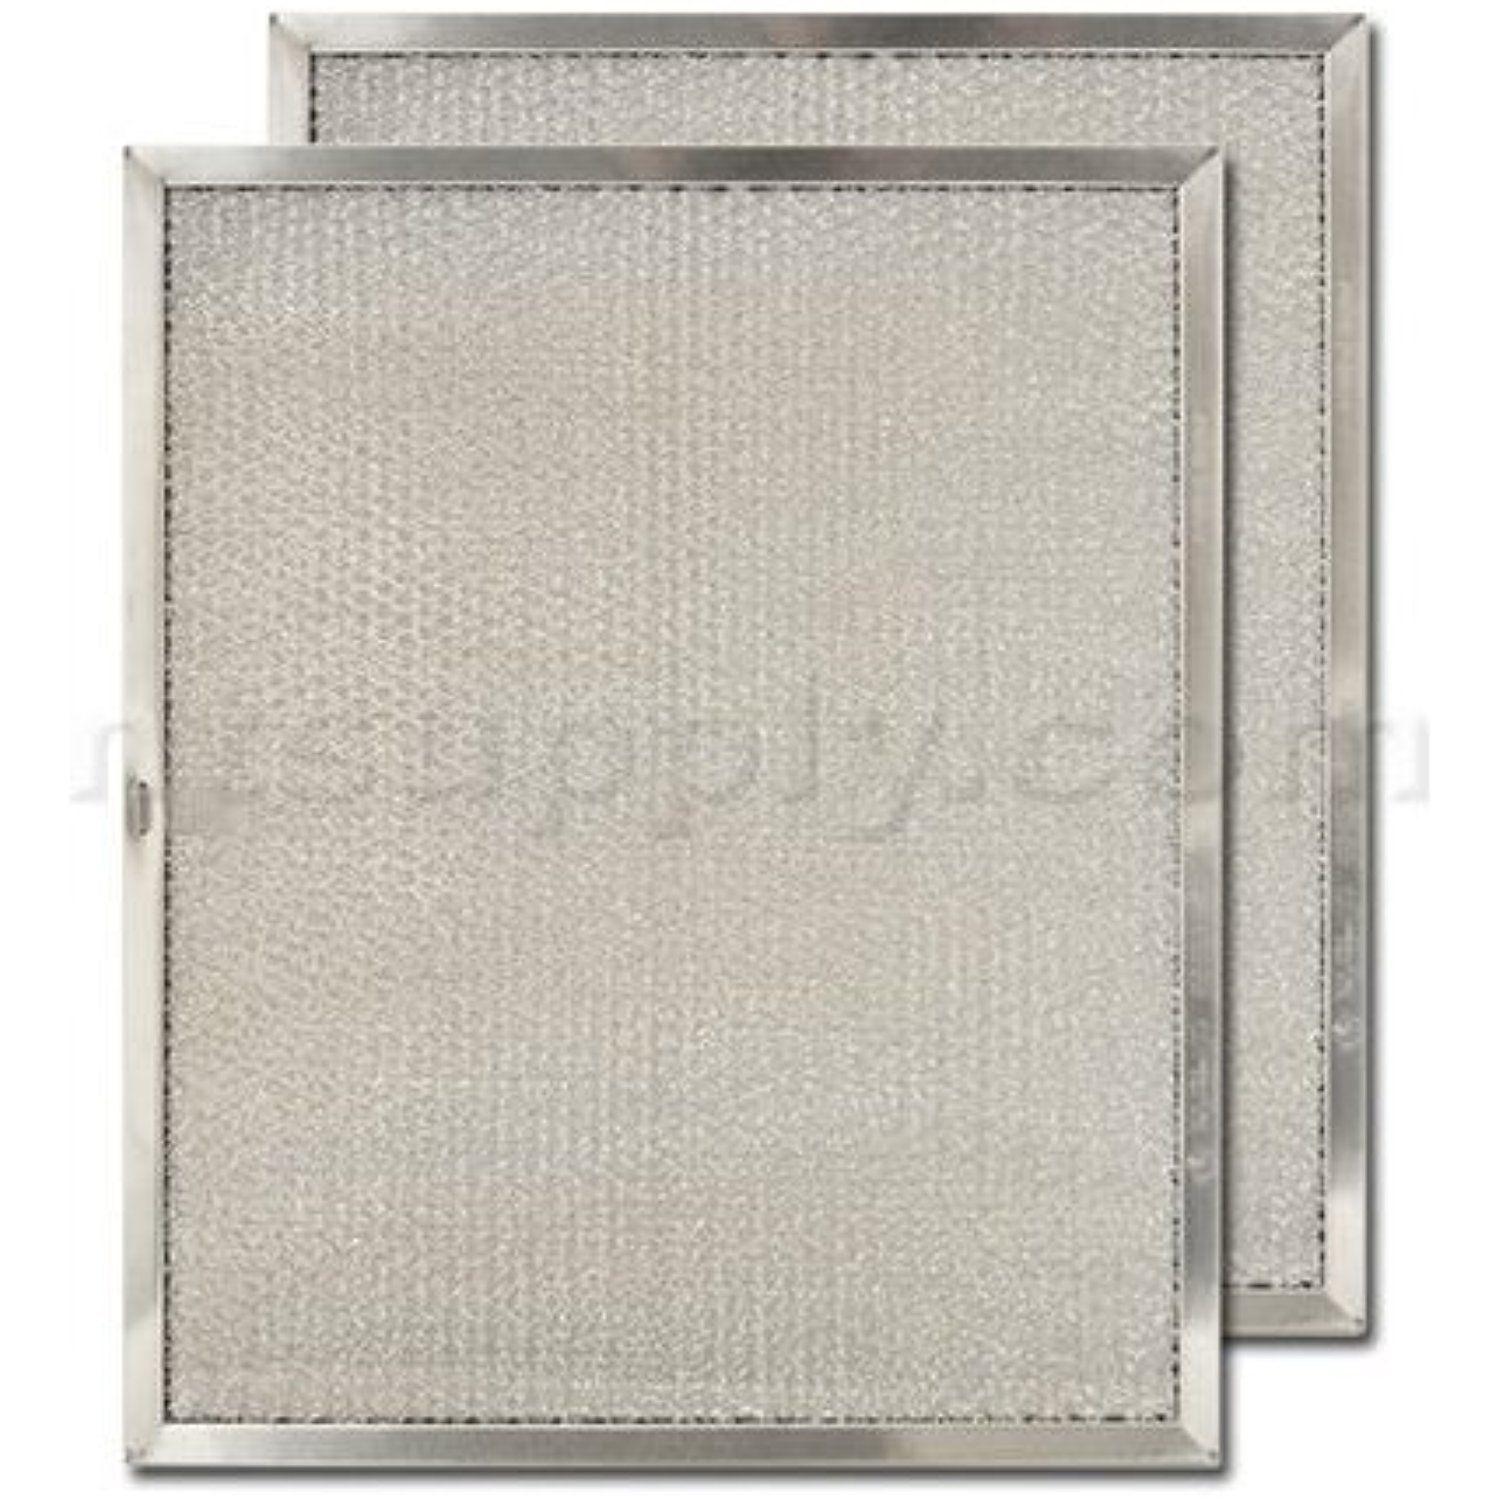 Broan Model Bps1fa30 Range Hood Filter 11 3 4 X 14 1 4 X 3 8 Click Image To Review More Details This Is An Affili Range Hood Filters Broan Range Hood